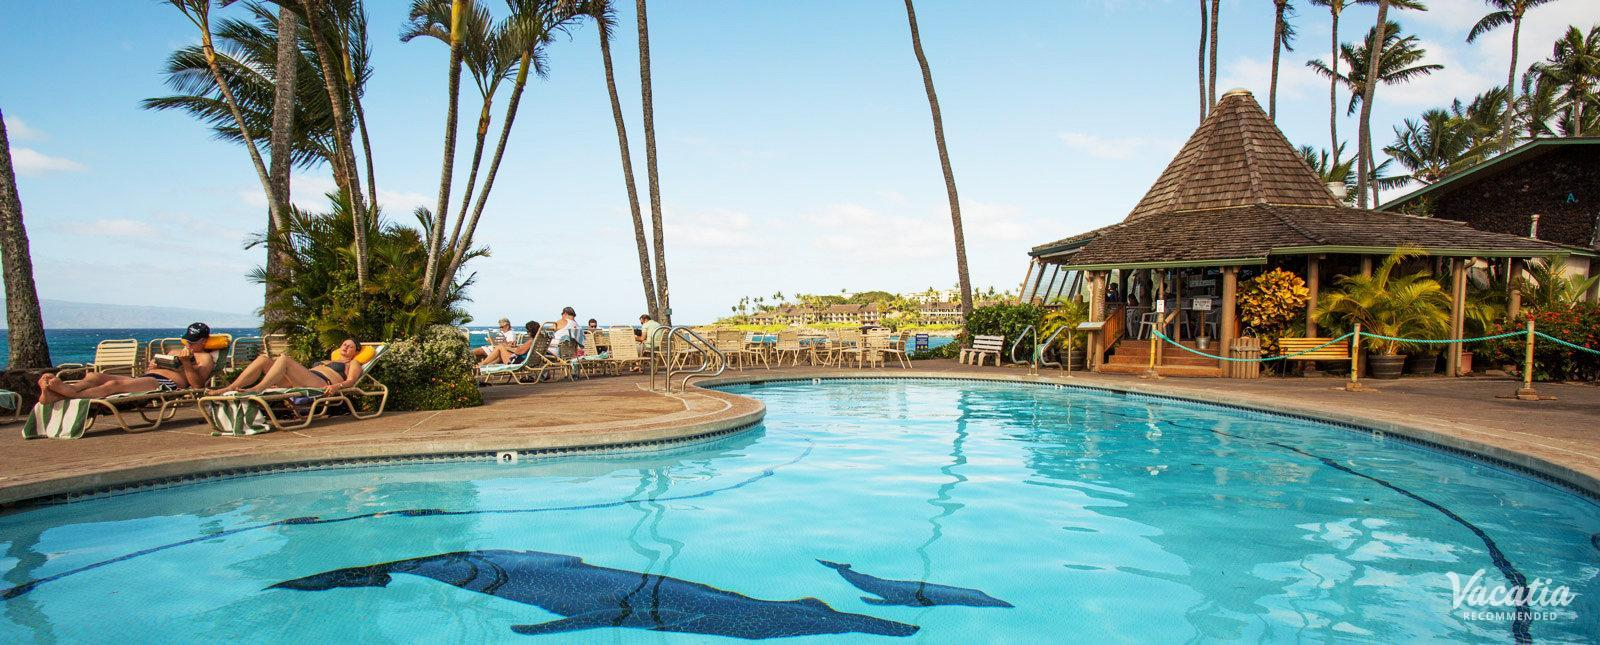 Napili Shores Maui by Outrigger familyfriendly resort pool